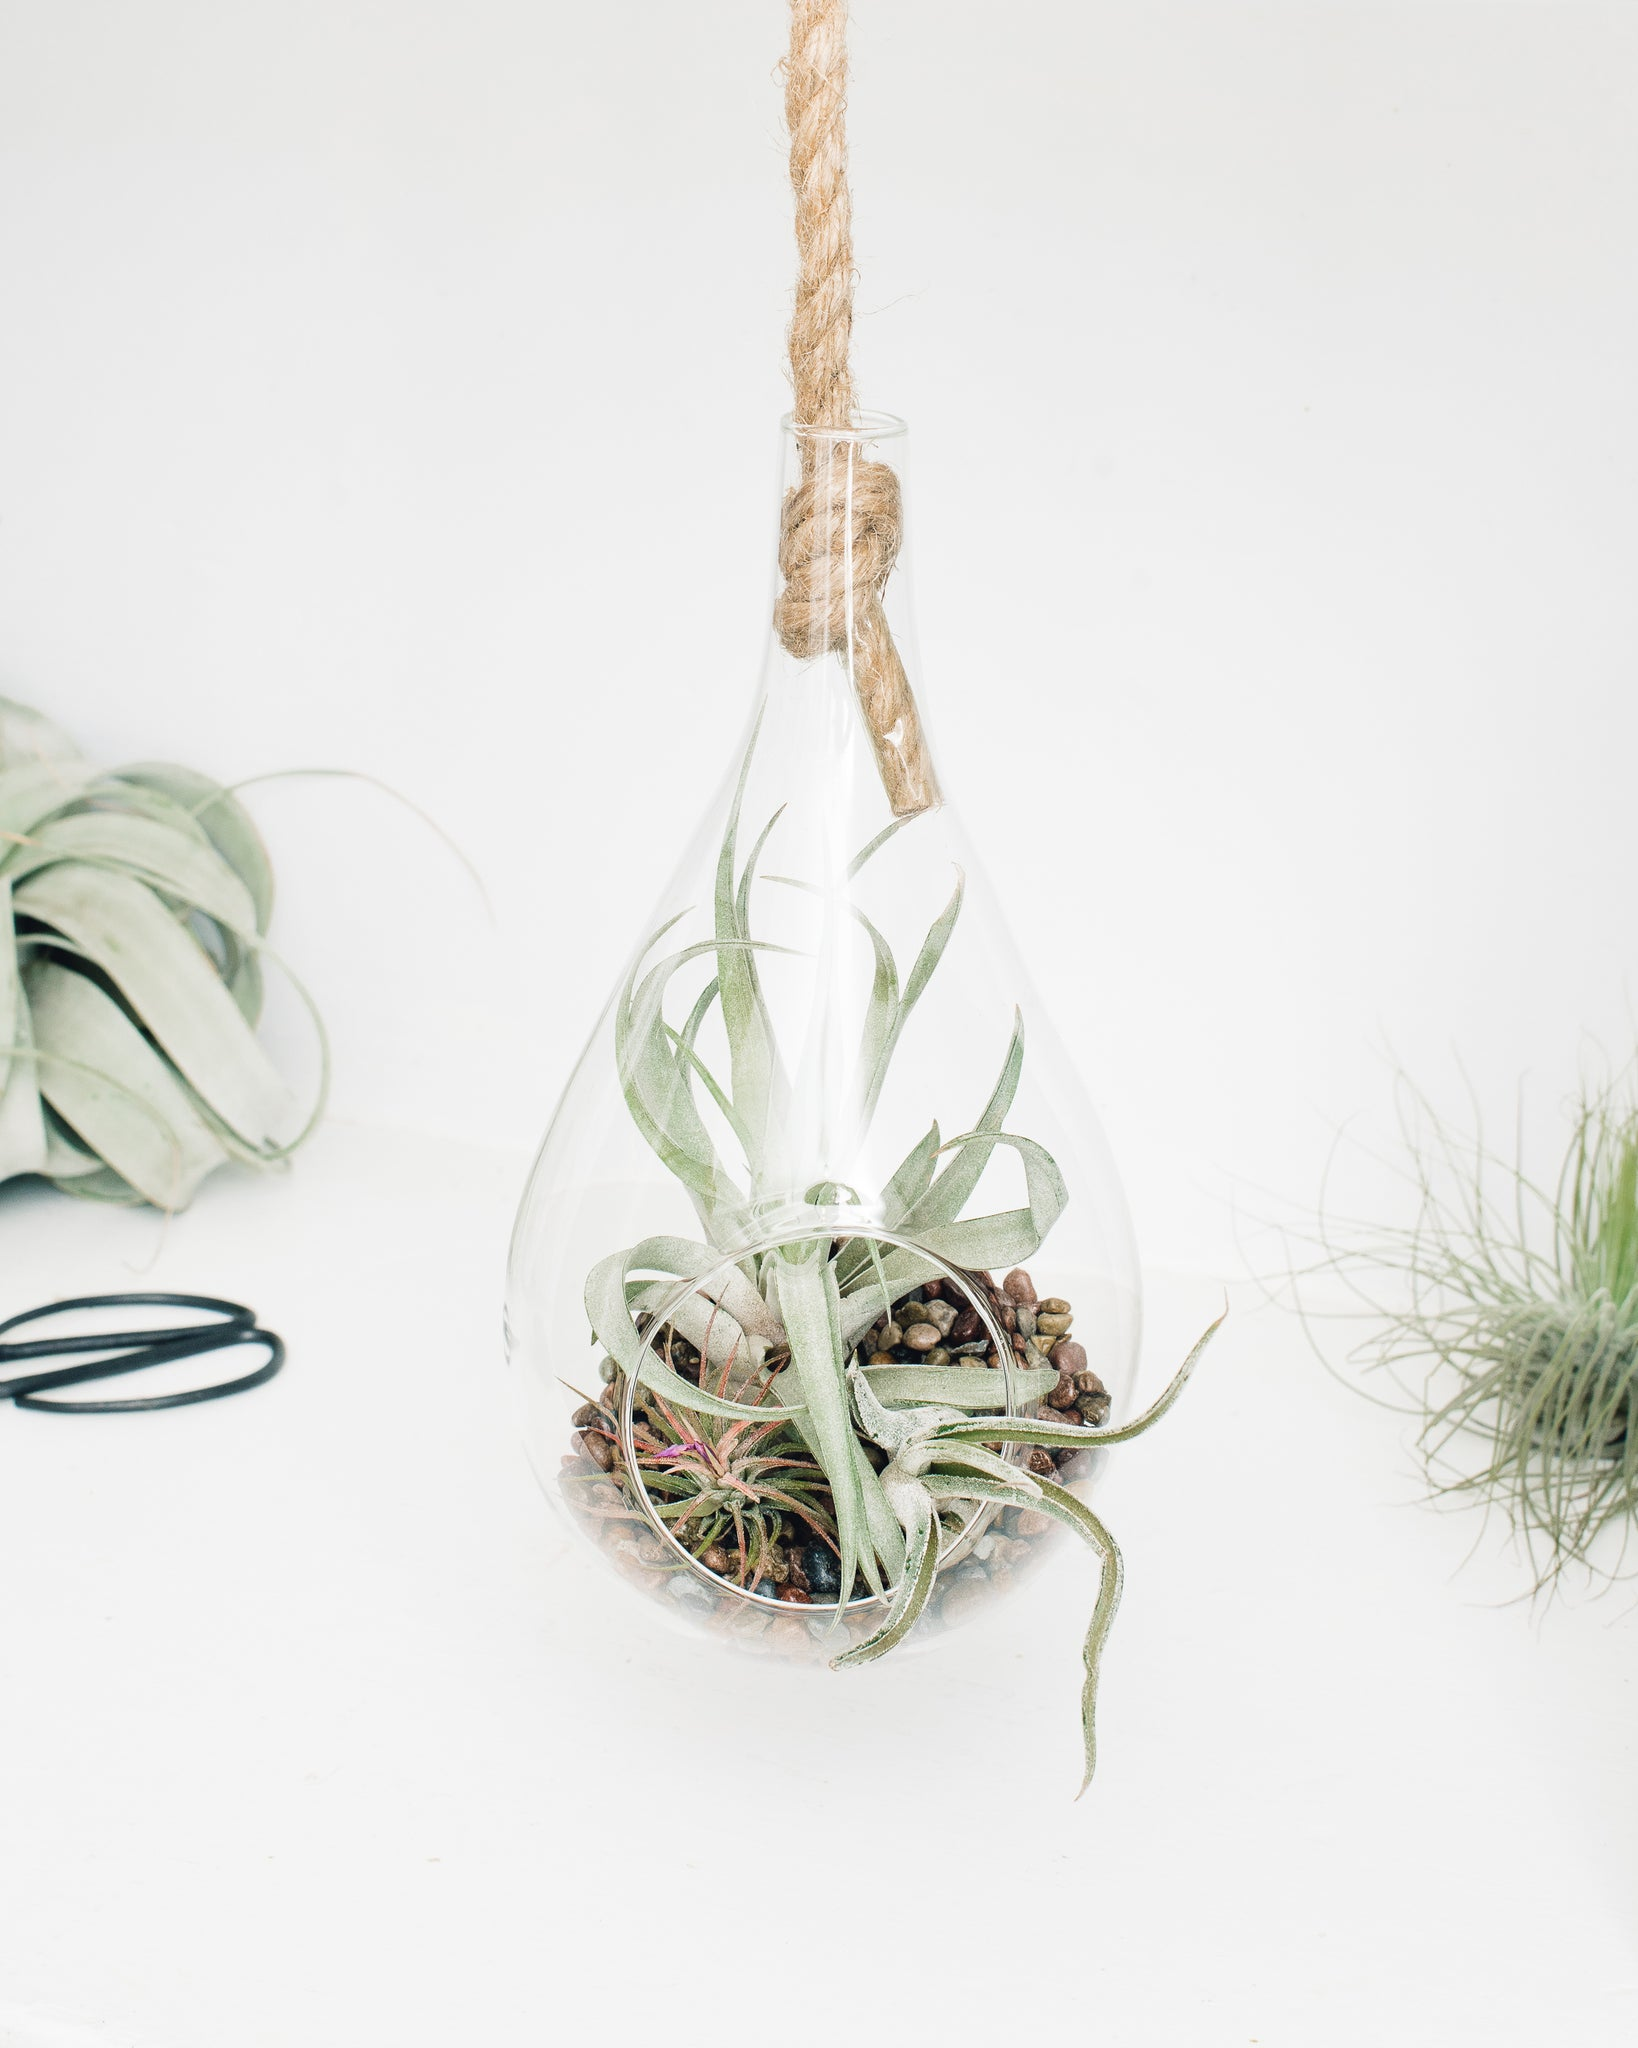 Hanging Rope Teardrop Terrariums